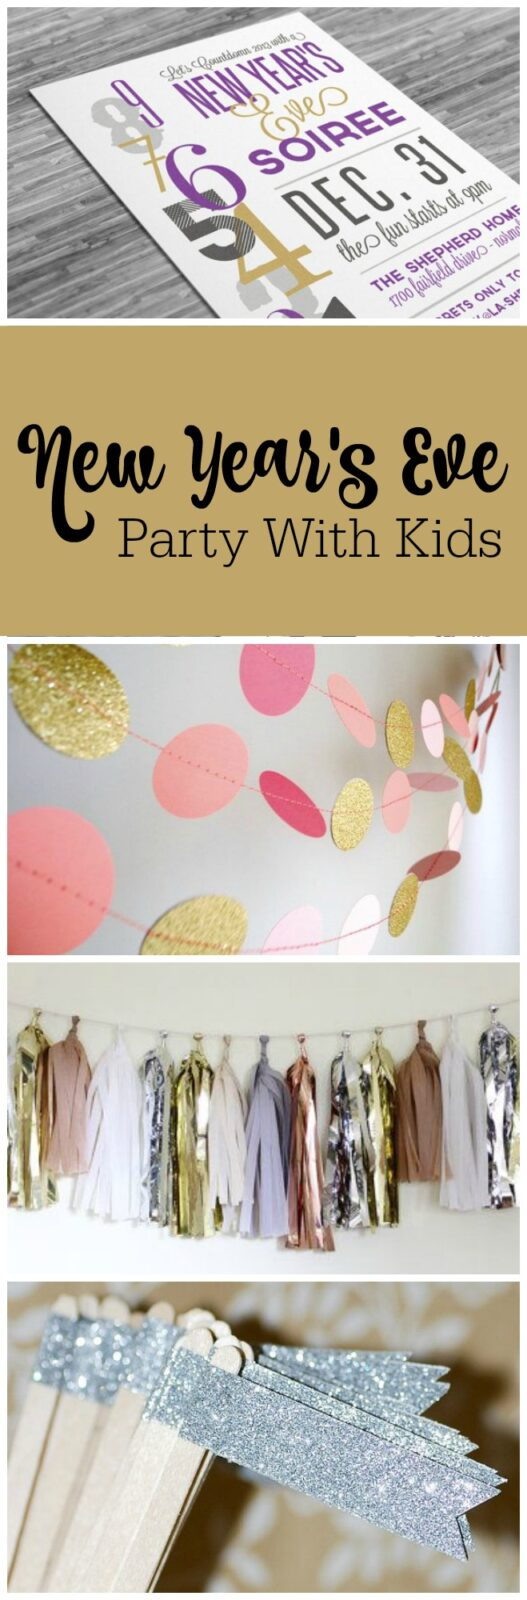 Ideas for hosting a New Year's Eve party with kids by The Party Teacher